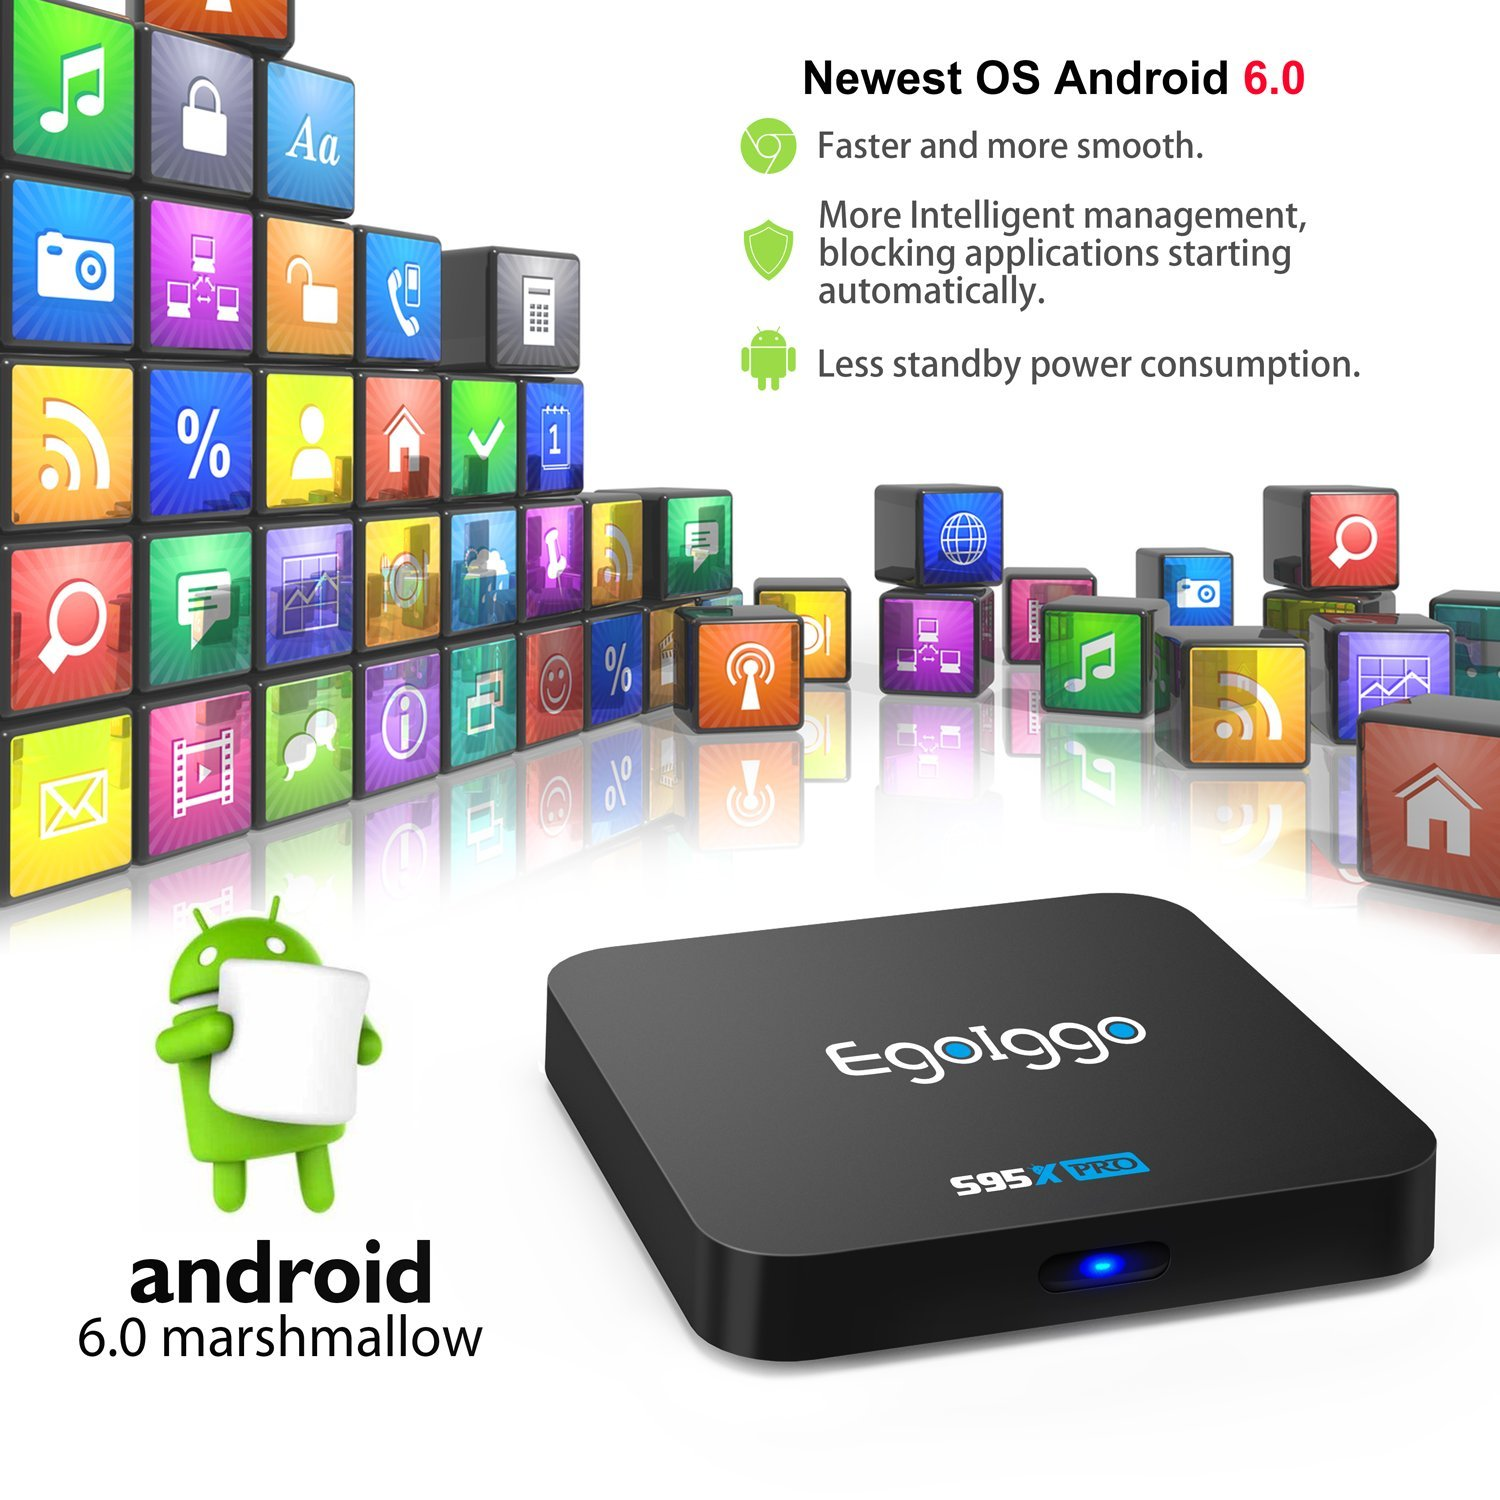 EgoIggo S95X Pro Android TV Box Android 6.0 2GB RAM + 16GB ROM 2.4G WiFi 4K 2K H.265 por Hardware HDMI Smart TV Box: Amazon.es: Electrónica